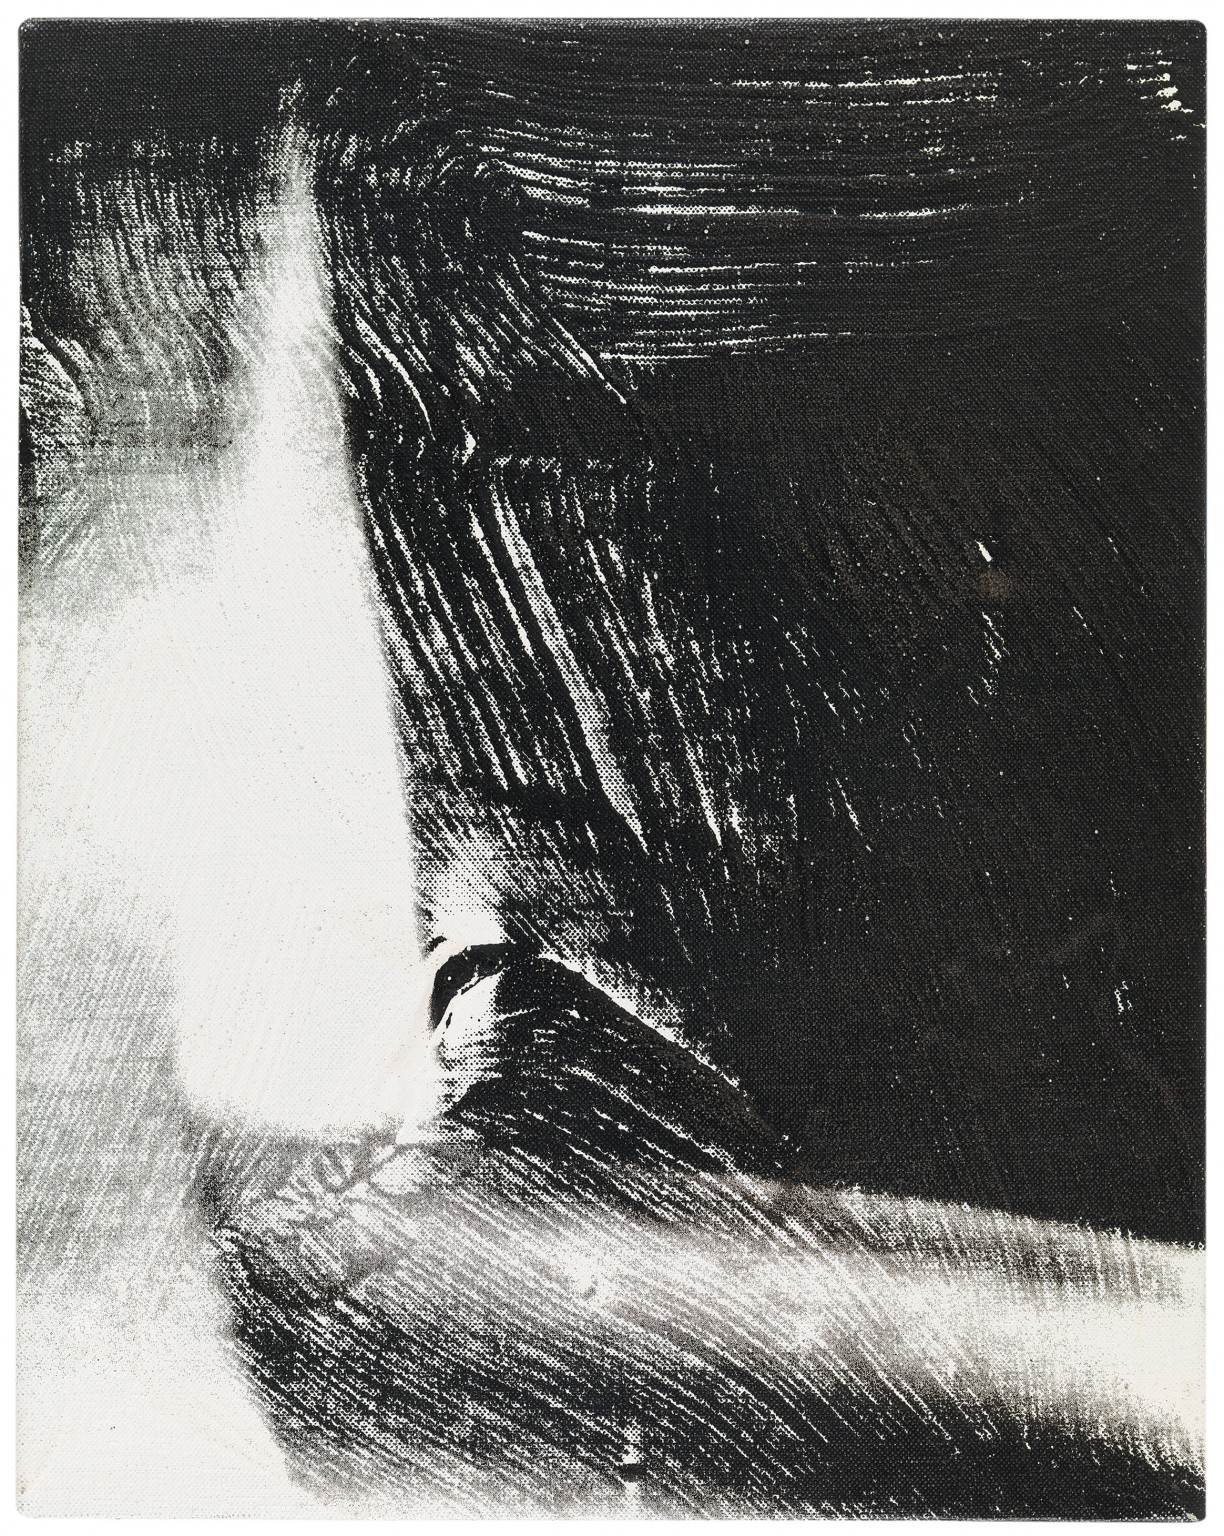 Andy Warhol, Untitled (Shadows), 1978. Private collection. Image courtesy of Gagosian Gallery